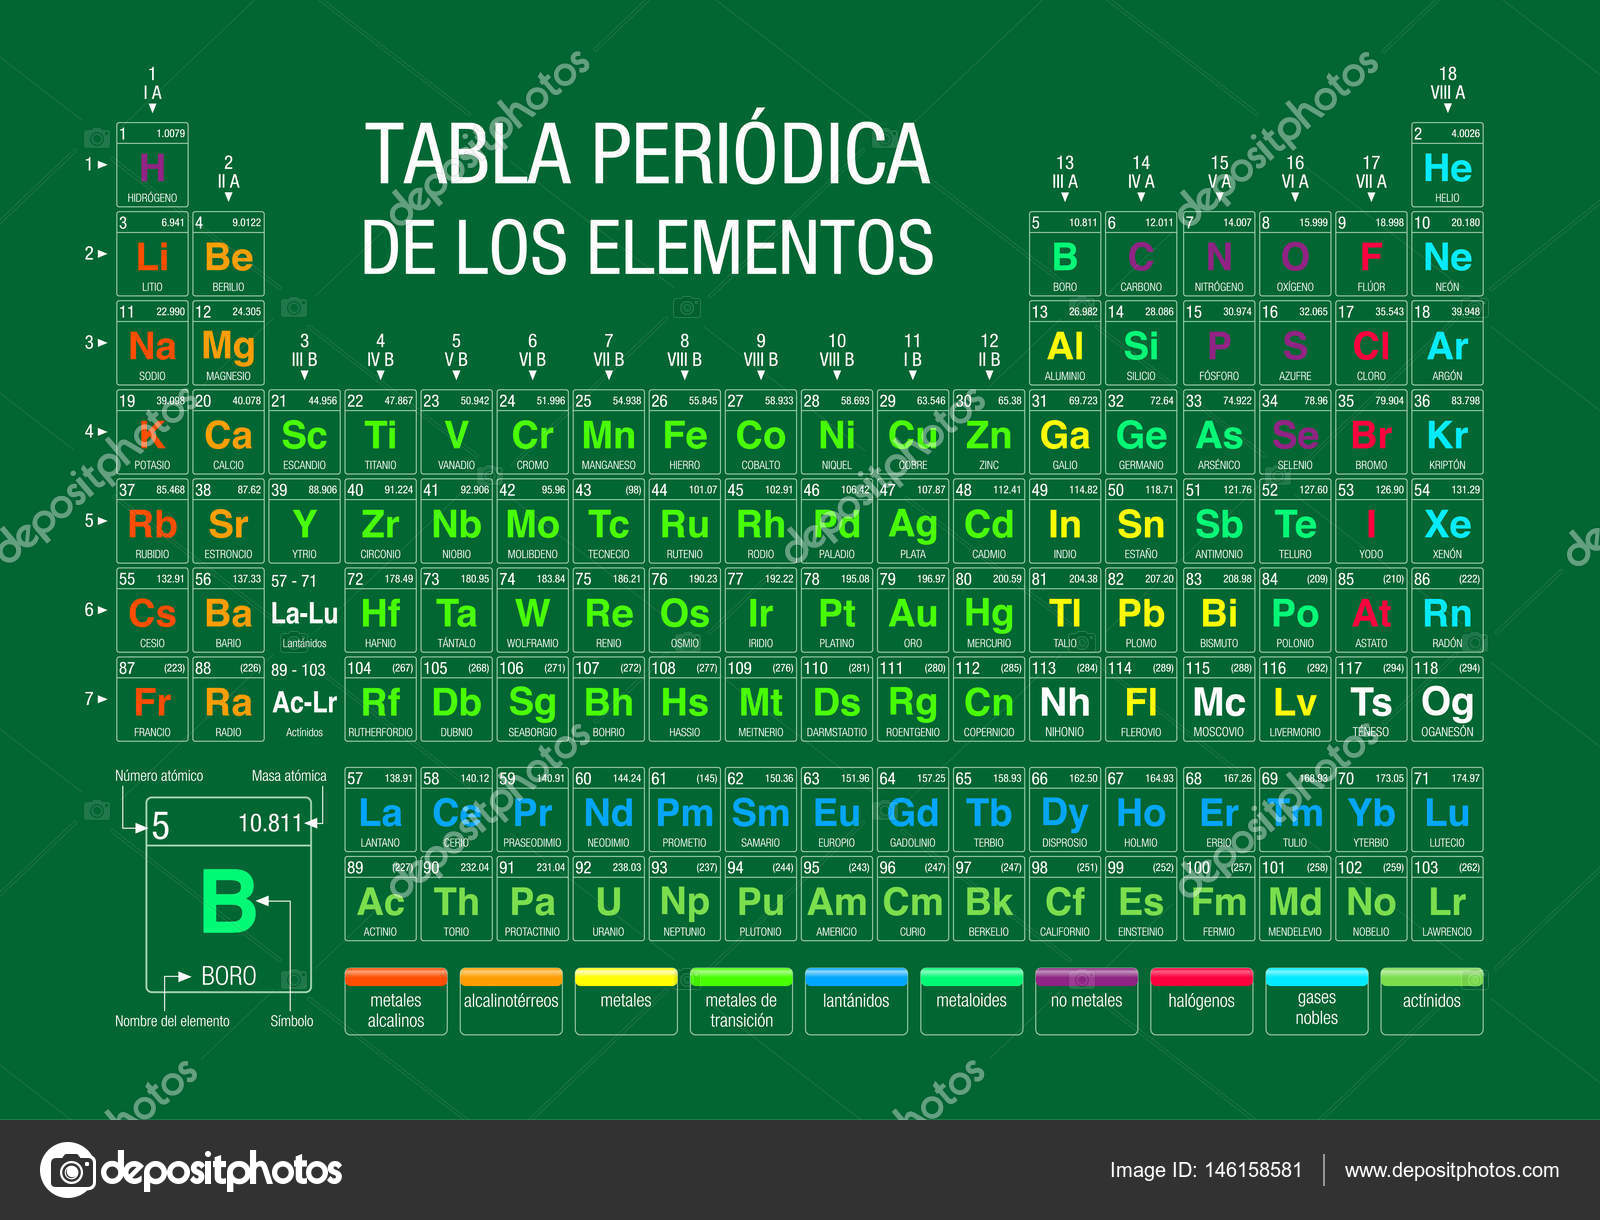 tabla periodica de los elementos periodic table of elements in spanish language on green background with the 4 new elements included on november 28